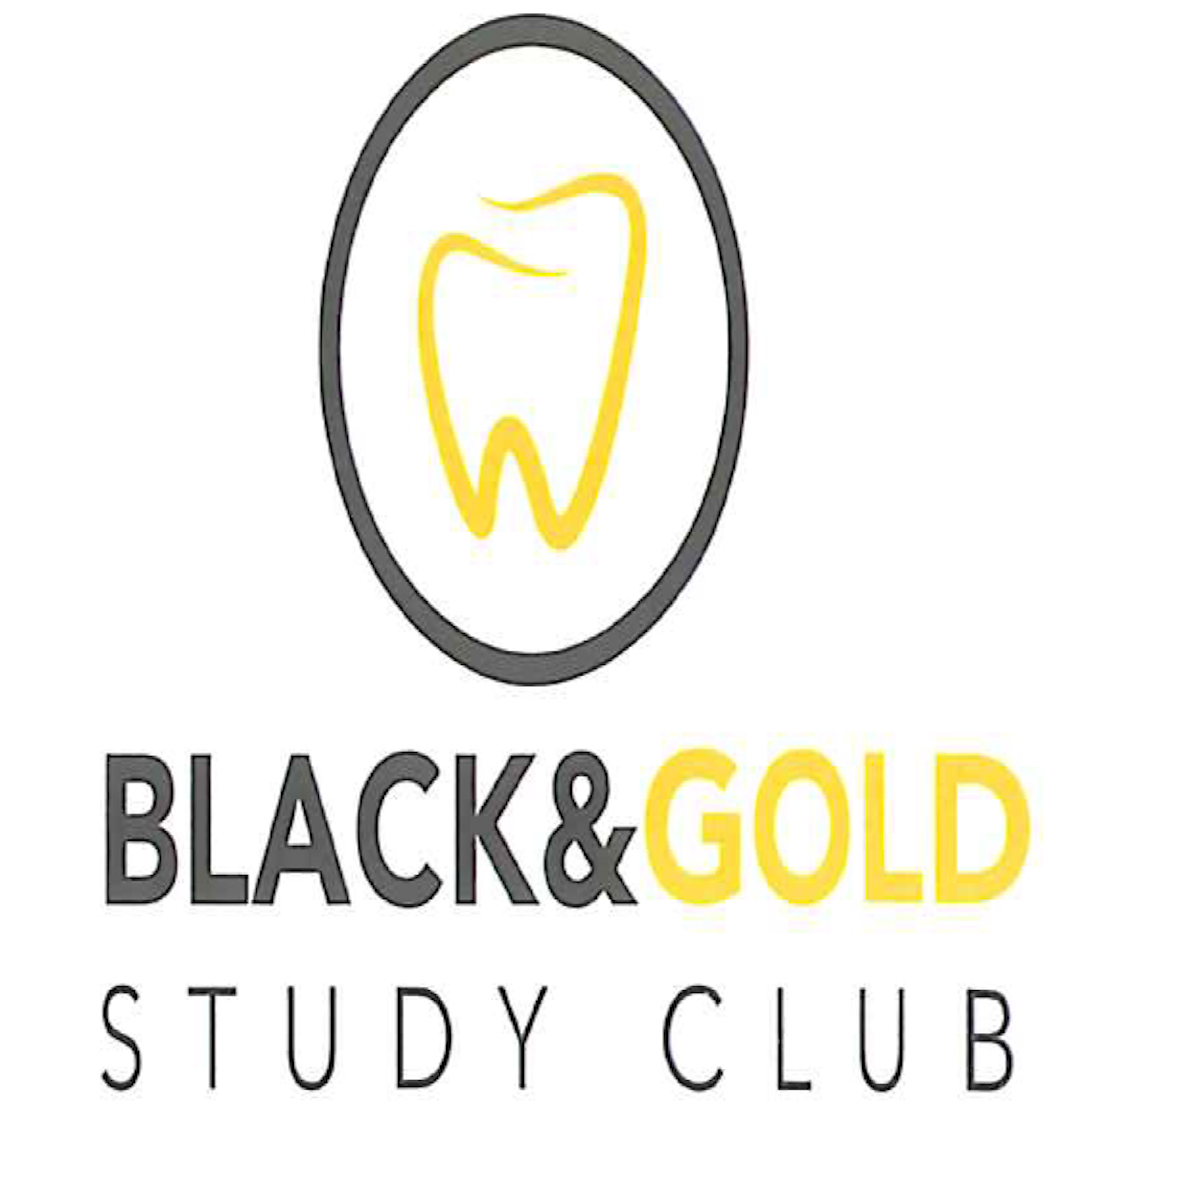 Black & Gold Study Club, Hiawatha, Iowa